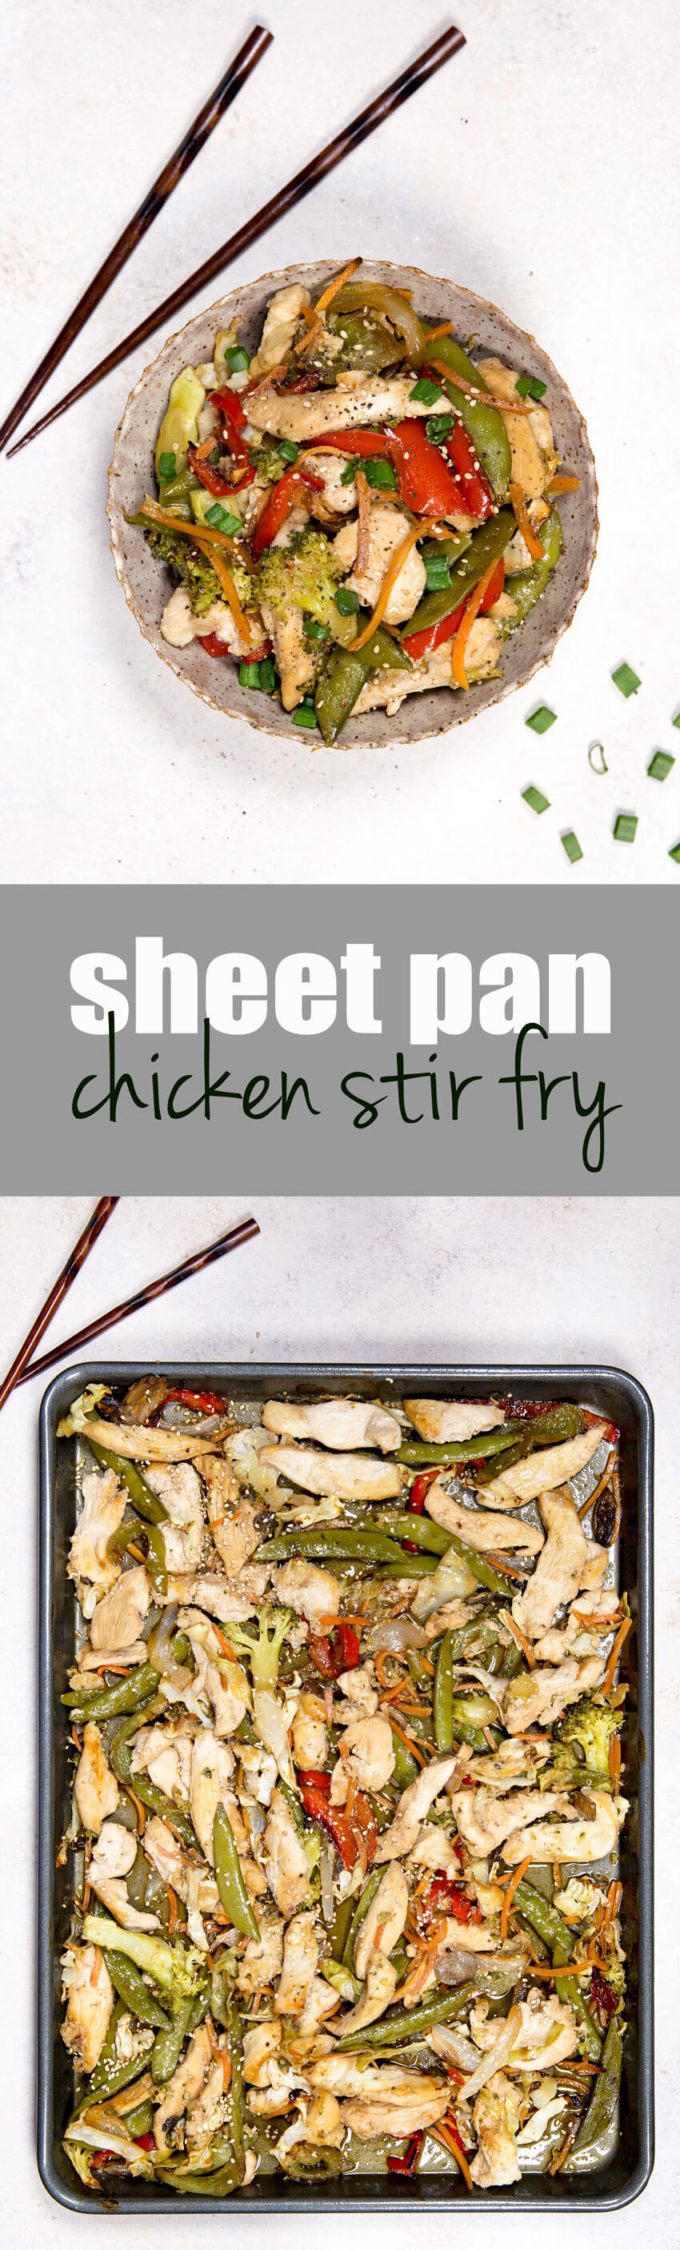 Chicken stir fry cooked on a sheet pan